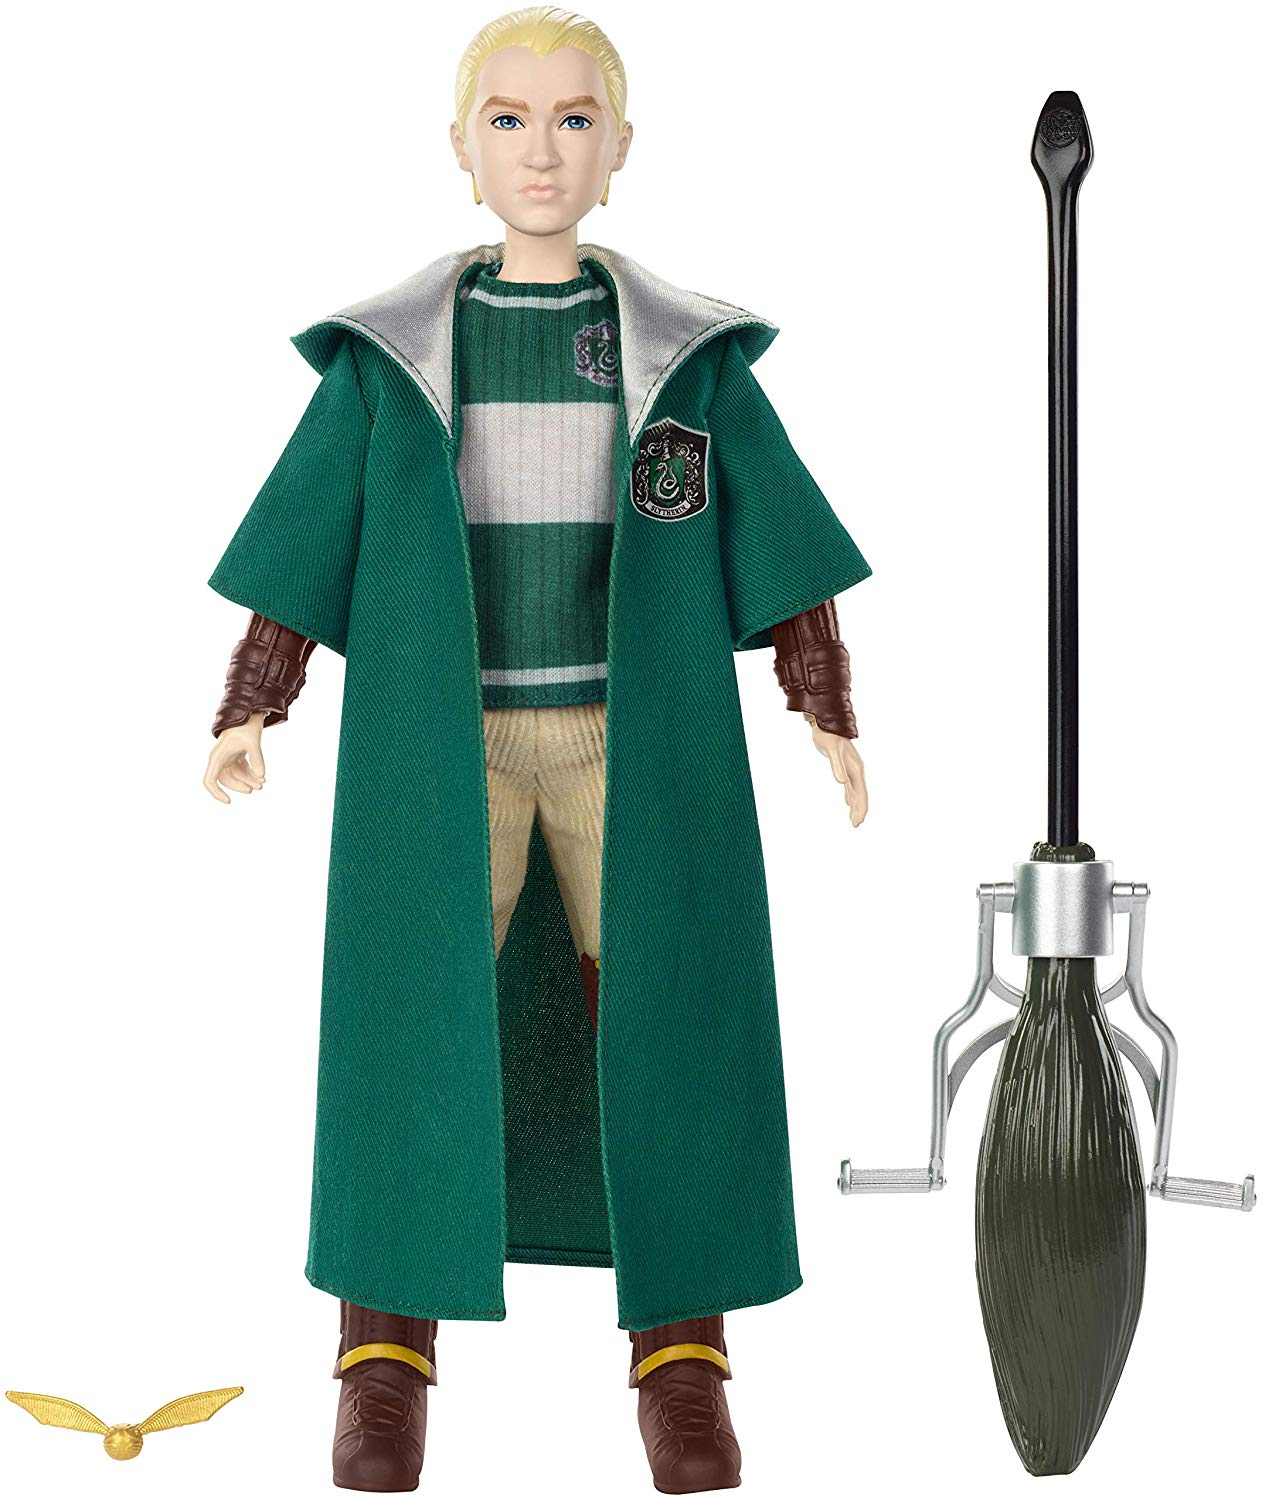 Harry Potter - Quidditch Draco Malfoy Doll (GDJ71)